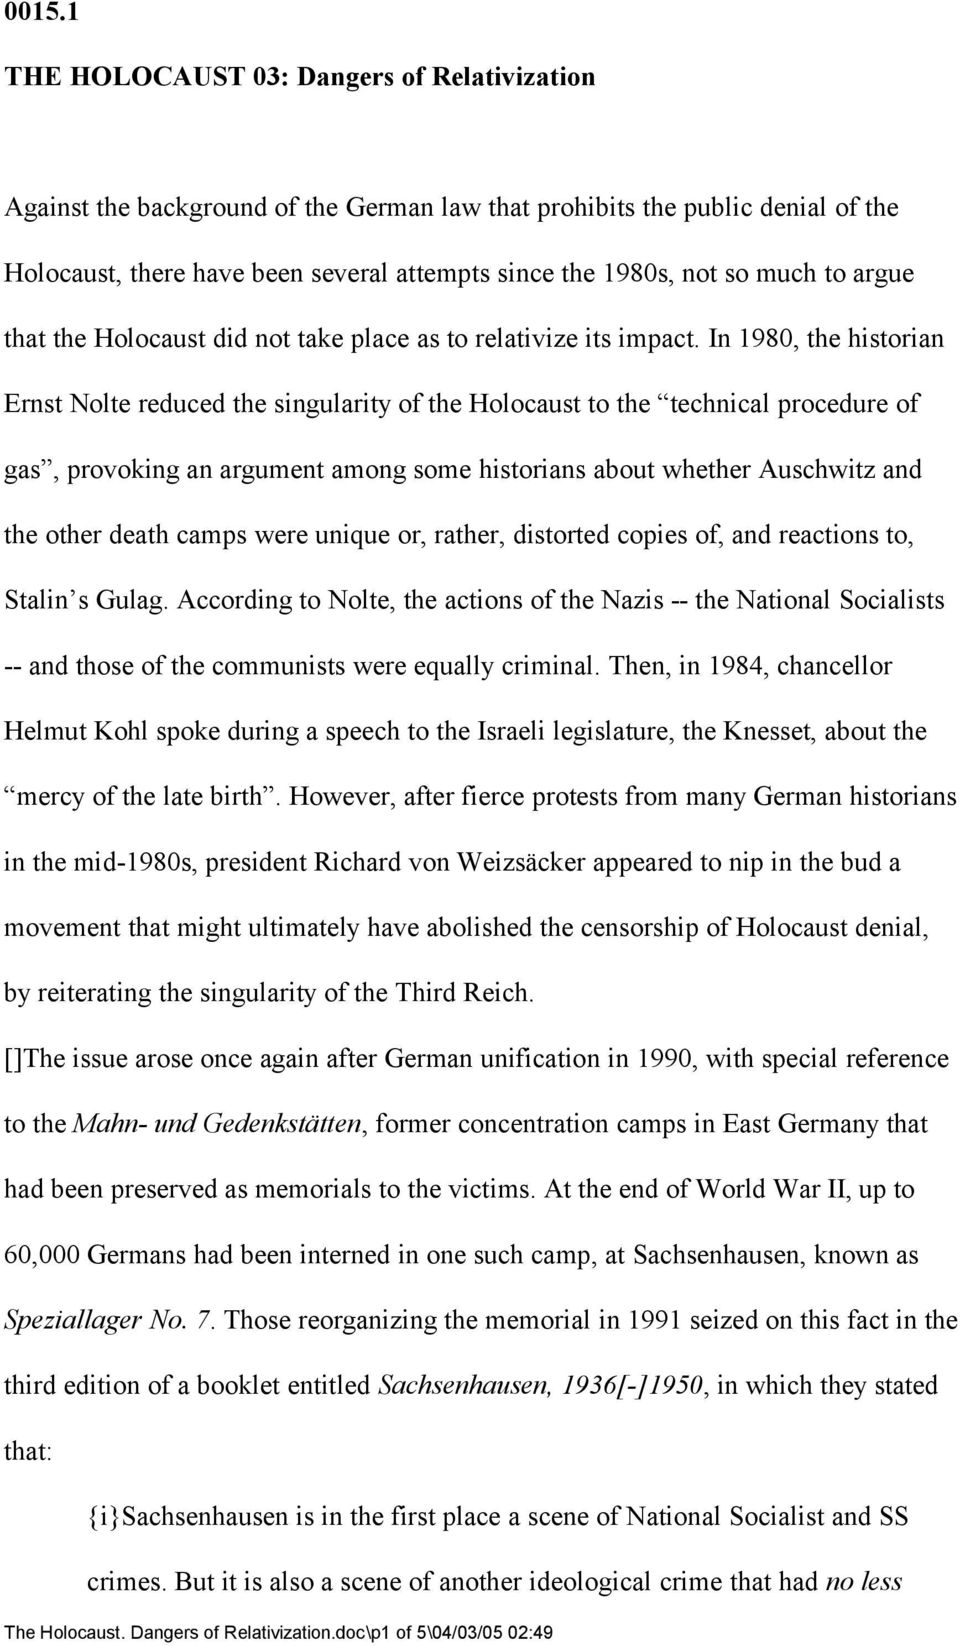 In 1980, the historian Ernst Nolte reduced the singularity of the Holocaust to the technical procedure of gas, provoking an argument among some historians about whether Auschwitz and the other death